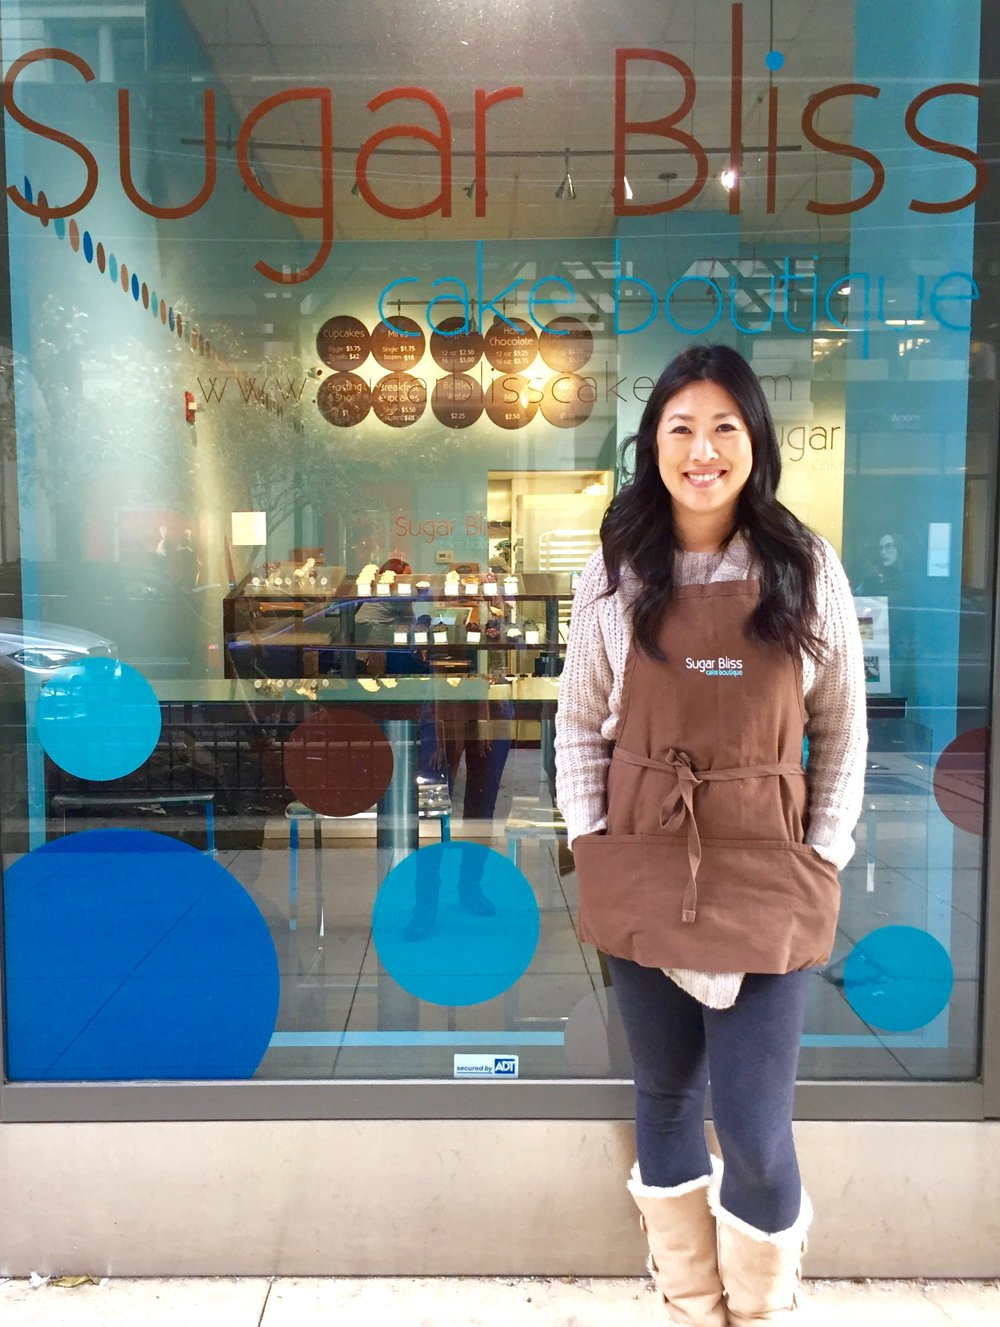 Teresa Ging owner of Sugar Bliss Cake Boutique